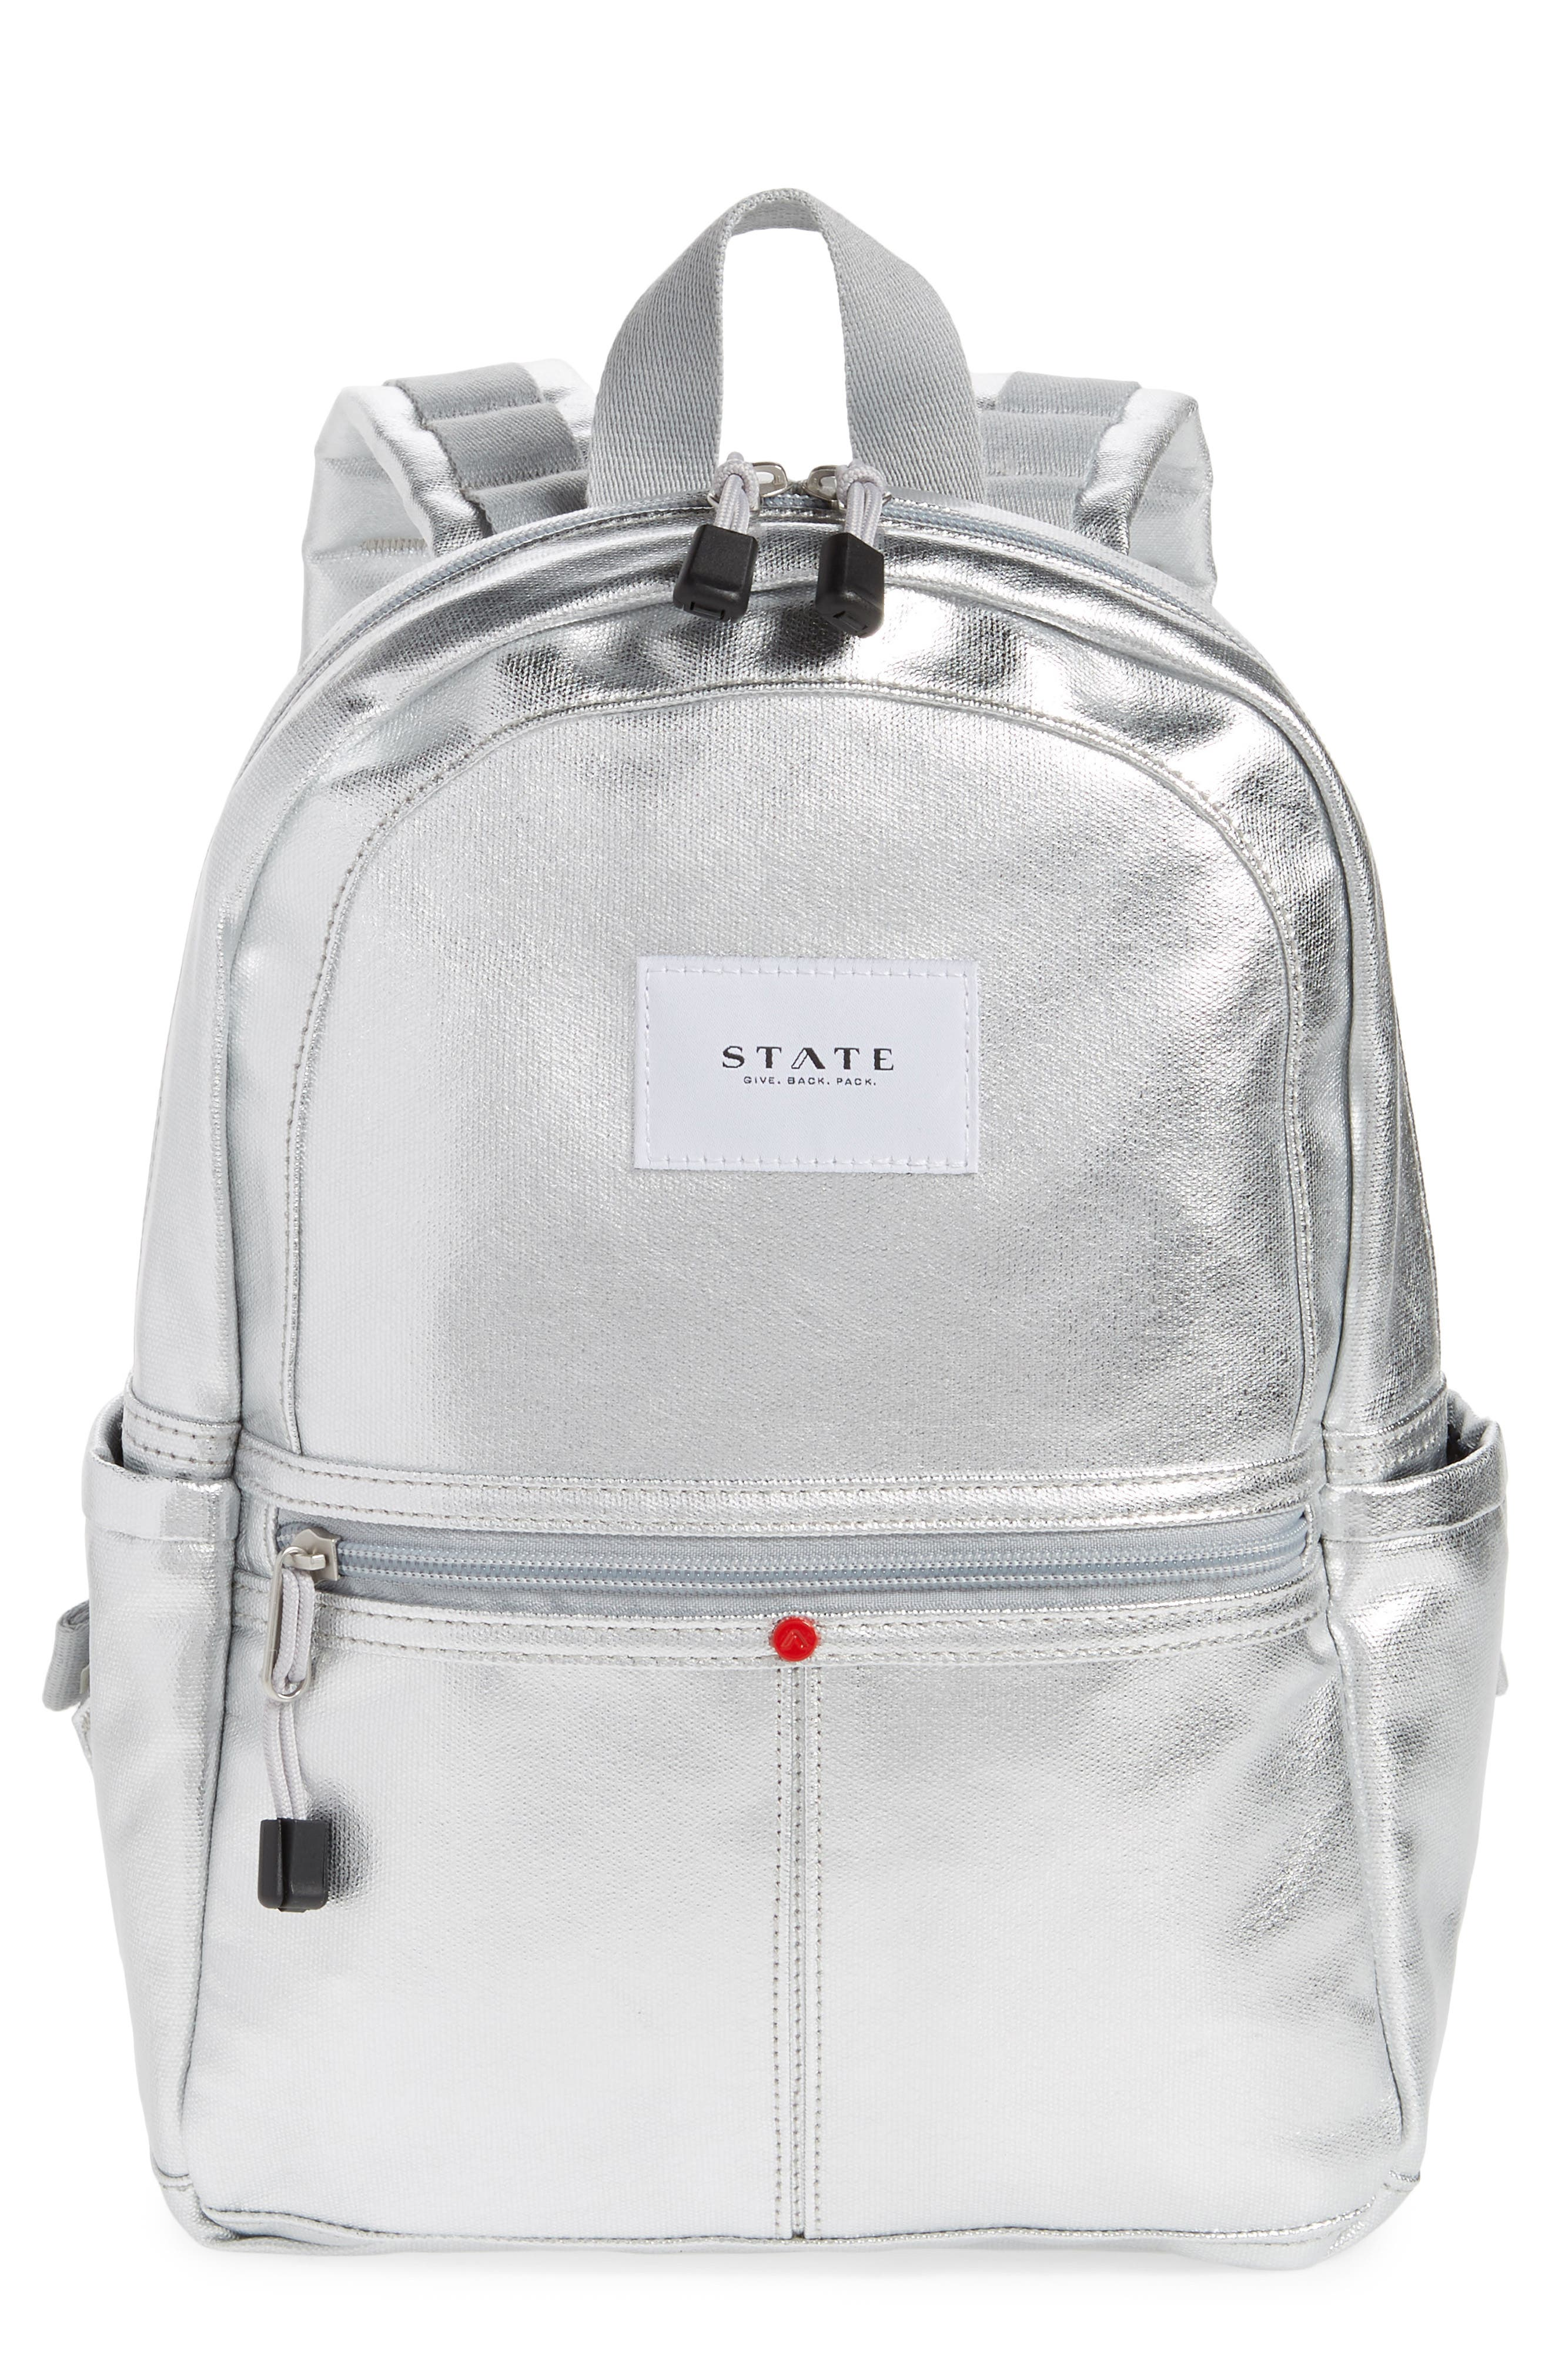 Downtown Mini Kane Canvas Backpack,                         Main,                         color, 041